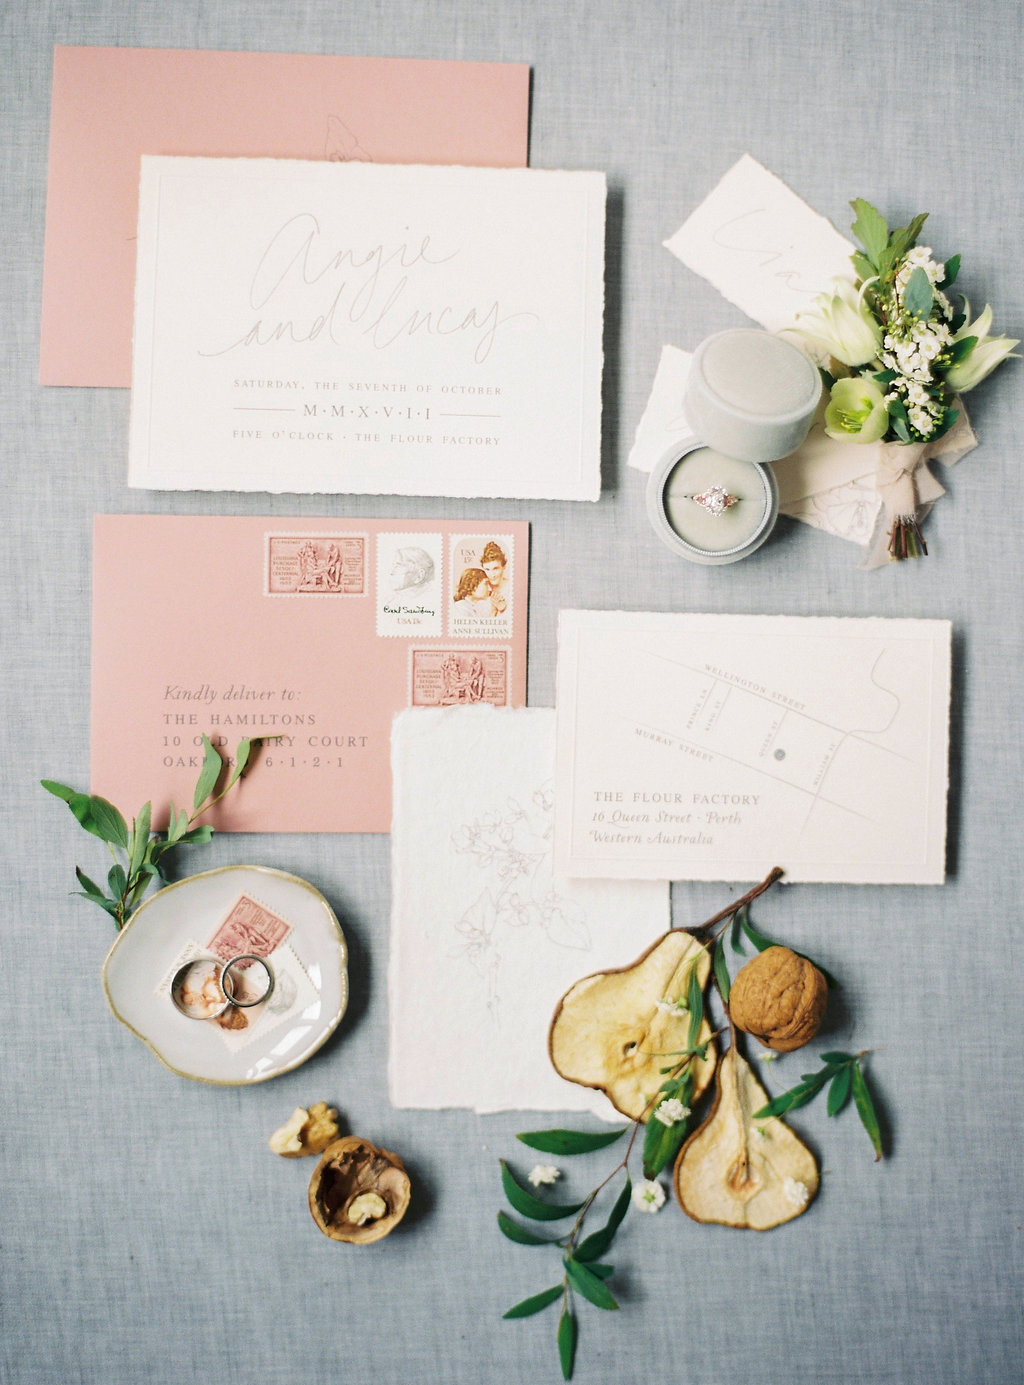 Aravella Event Design | Modern Minimalist Bridal Inspiration | Photo by Katie Grant Photography | Stationery Flatlay